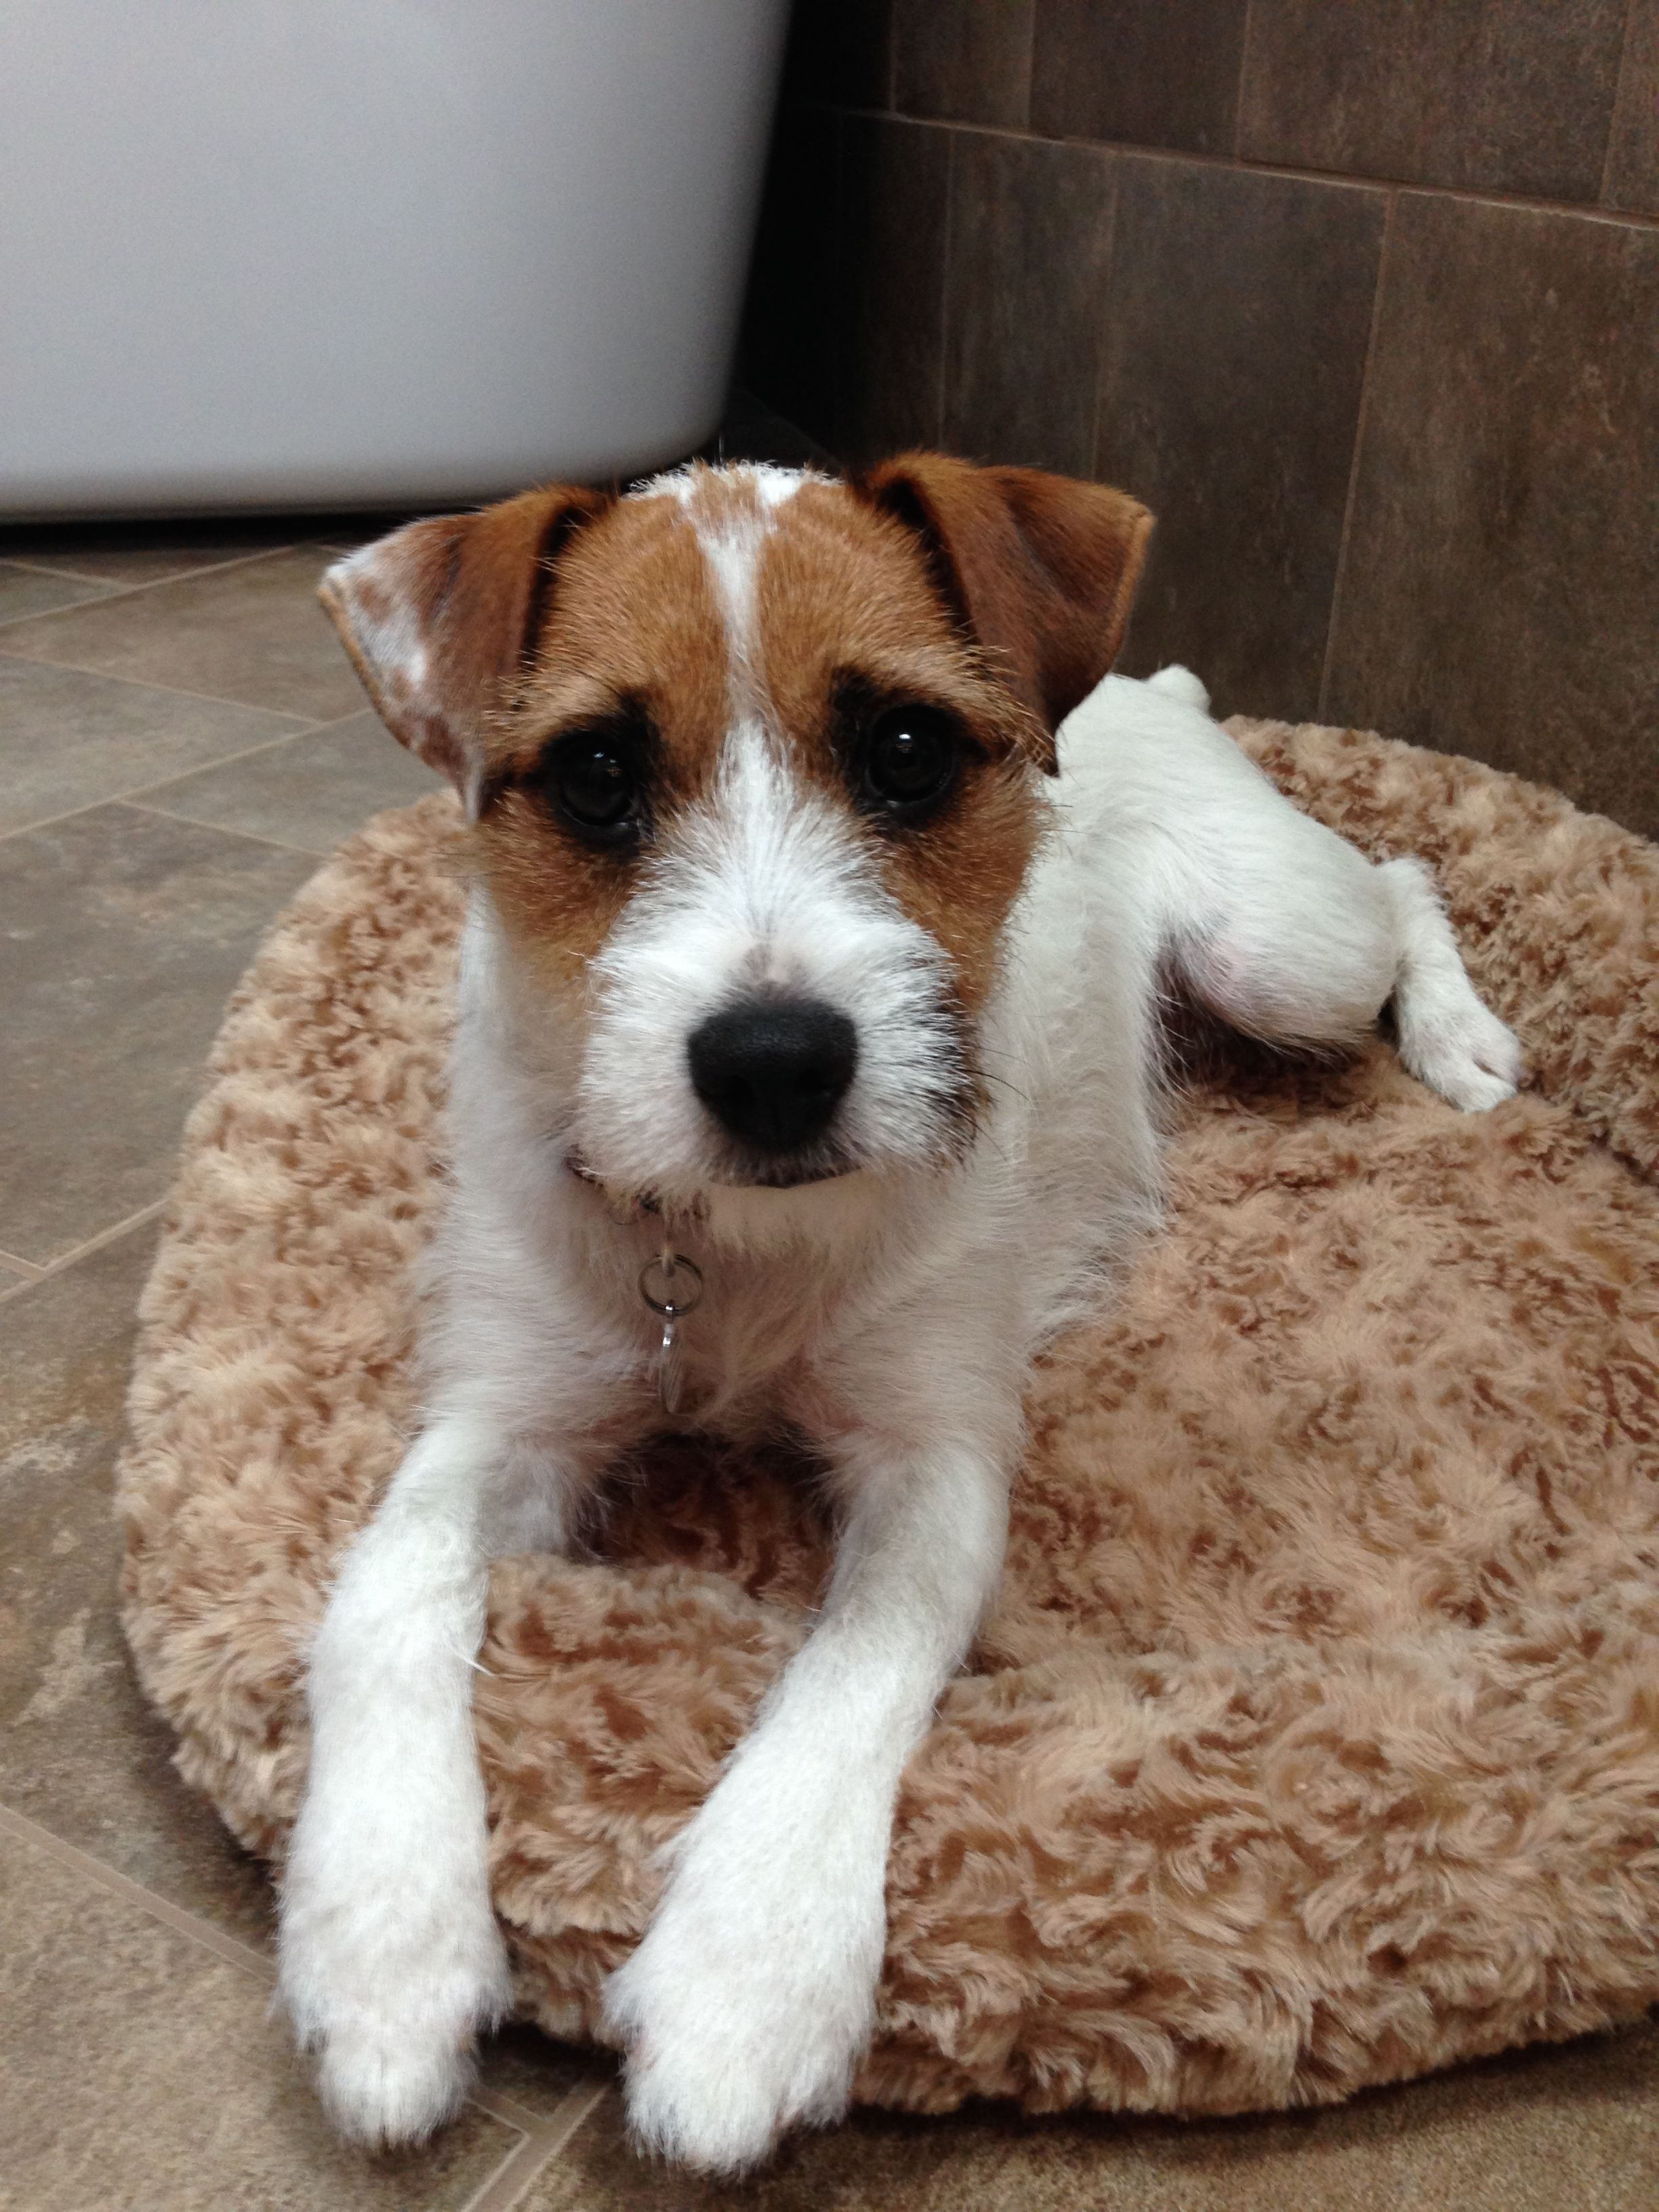 Zooey Parson Russell Terrier This makes me wonder if